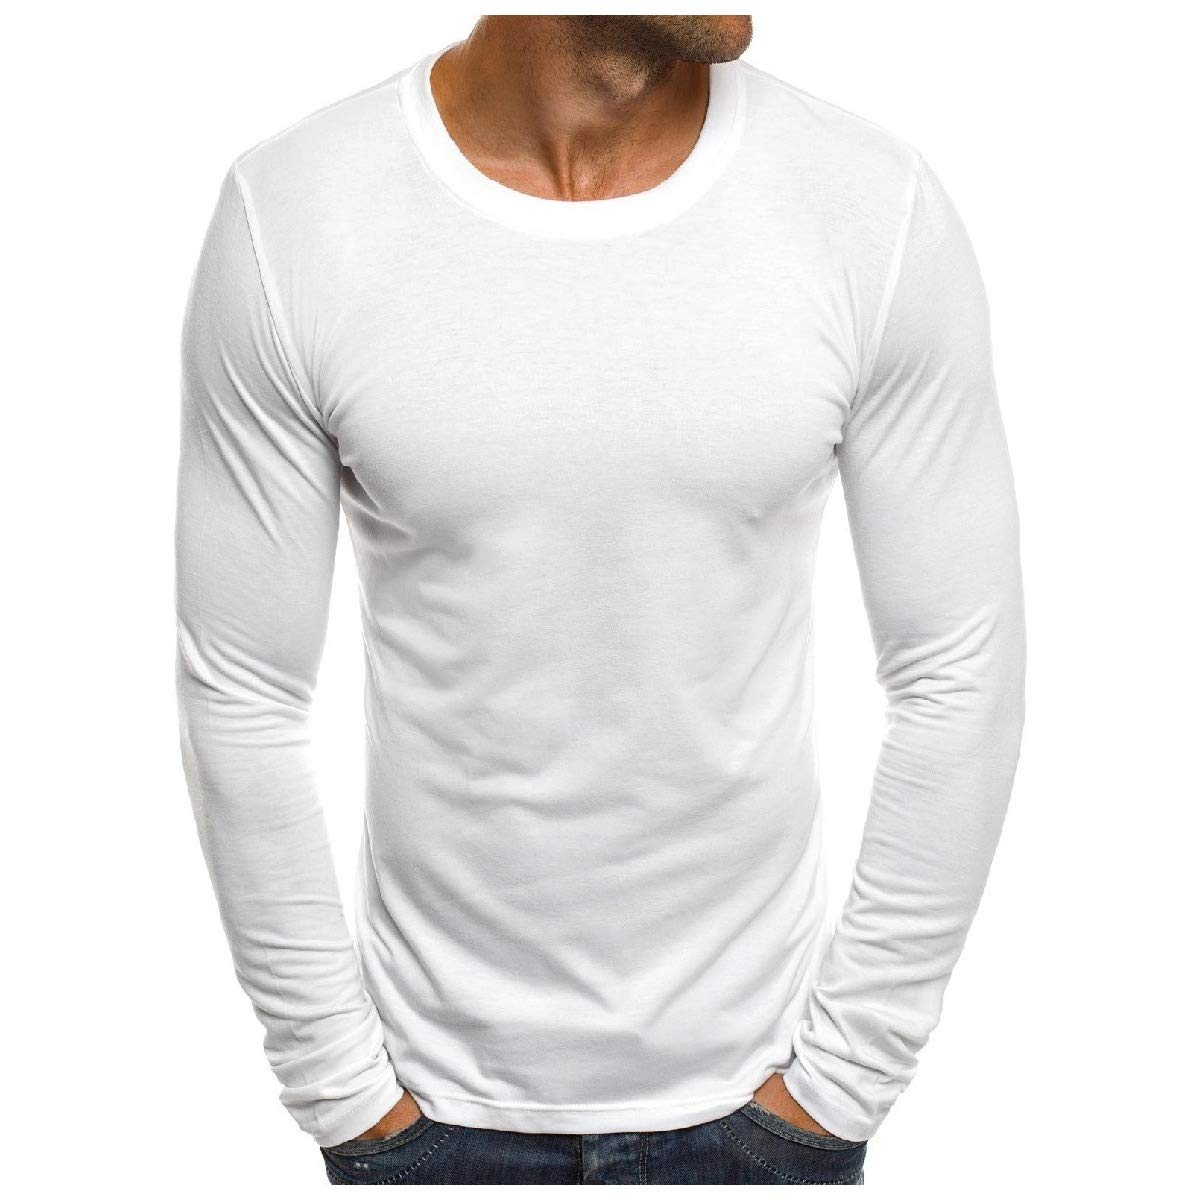 Mfasica Mens Scoop Neck Solid Colored Long Sleeve Slim Fit T-Shirt Top